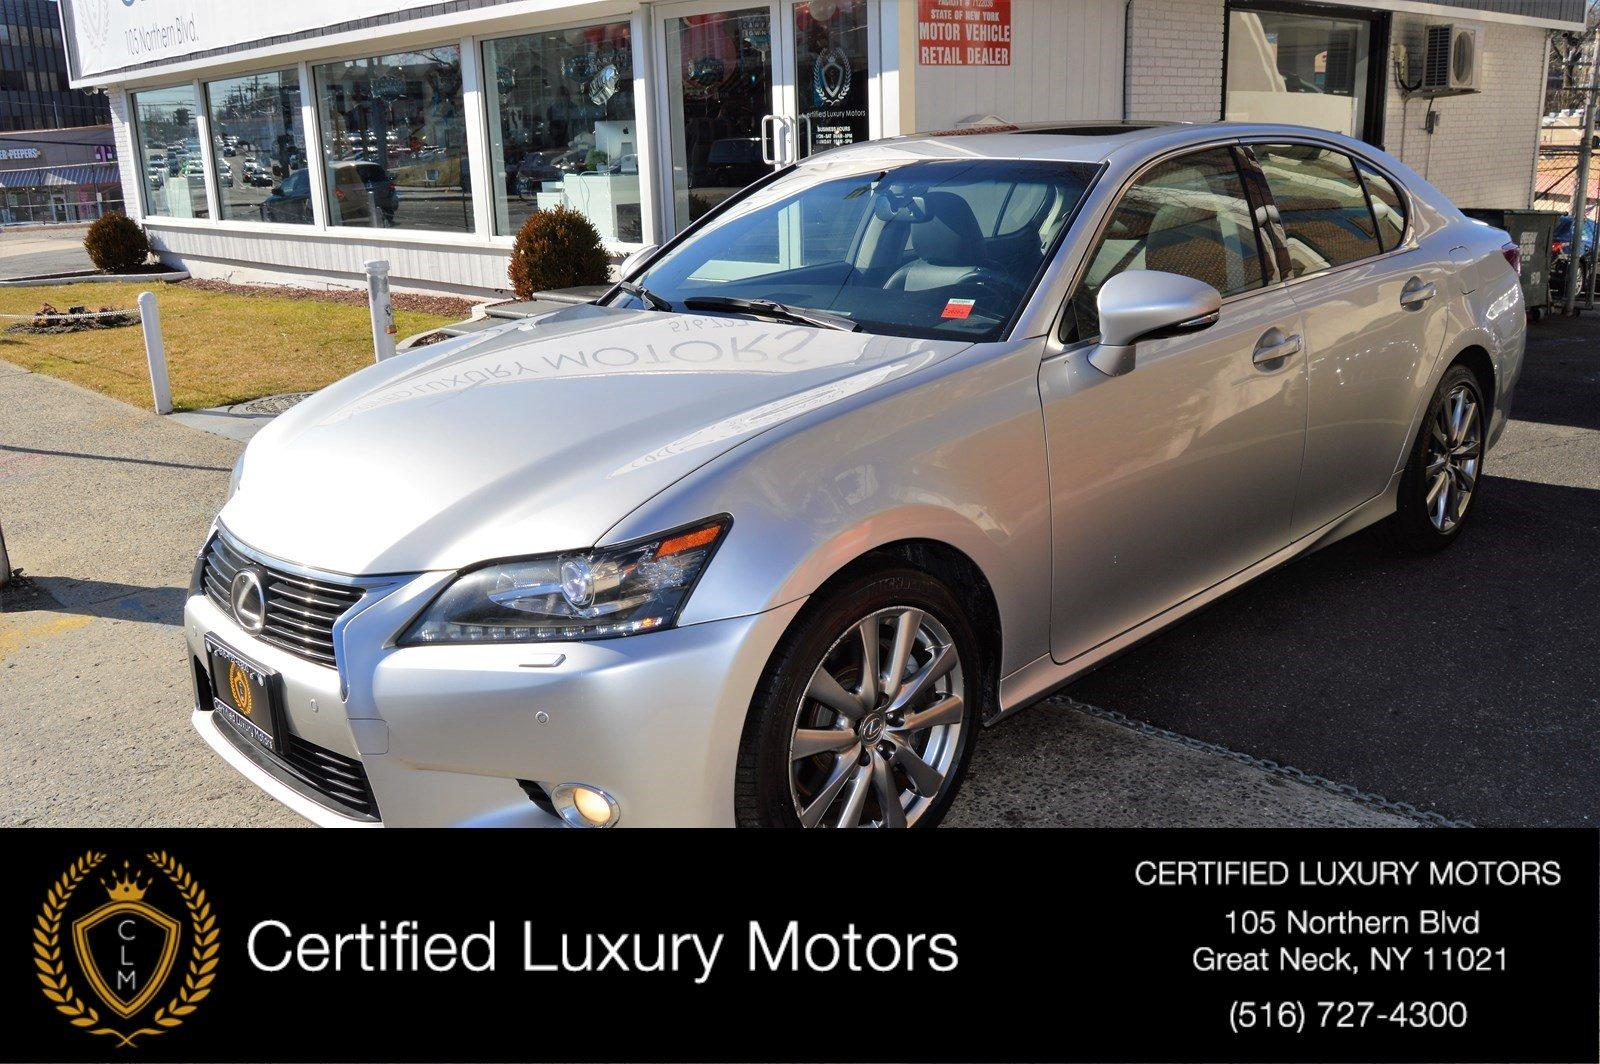 Used 2013 Lexus GS 350 AWD (Navi/Sunroof)  | Great Neck, NY